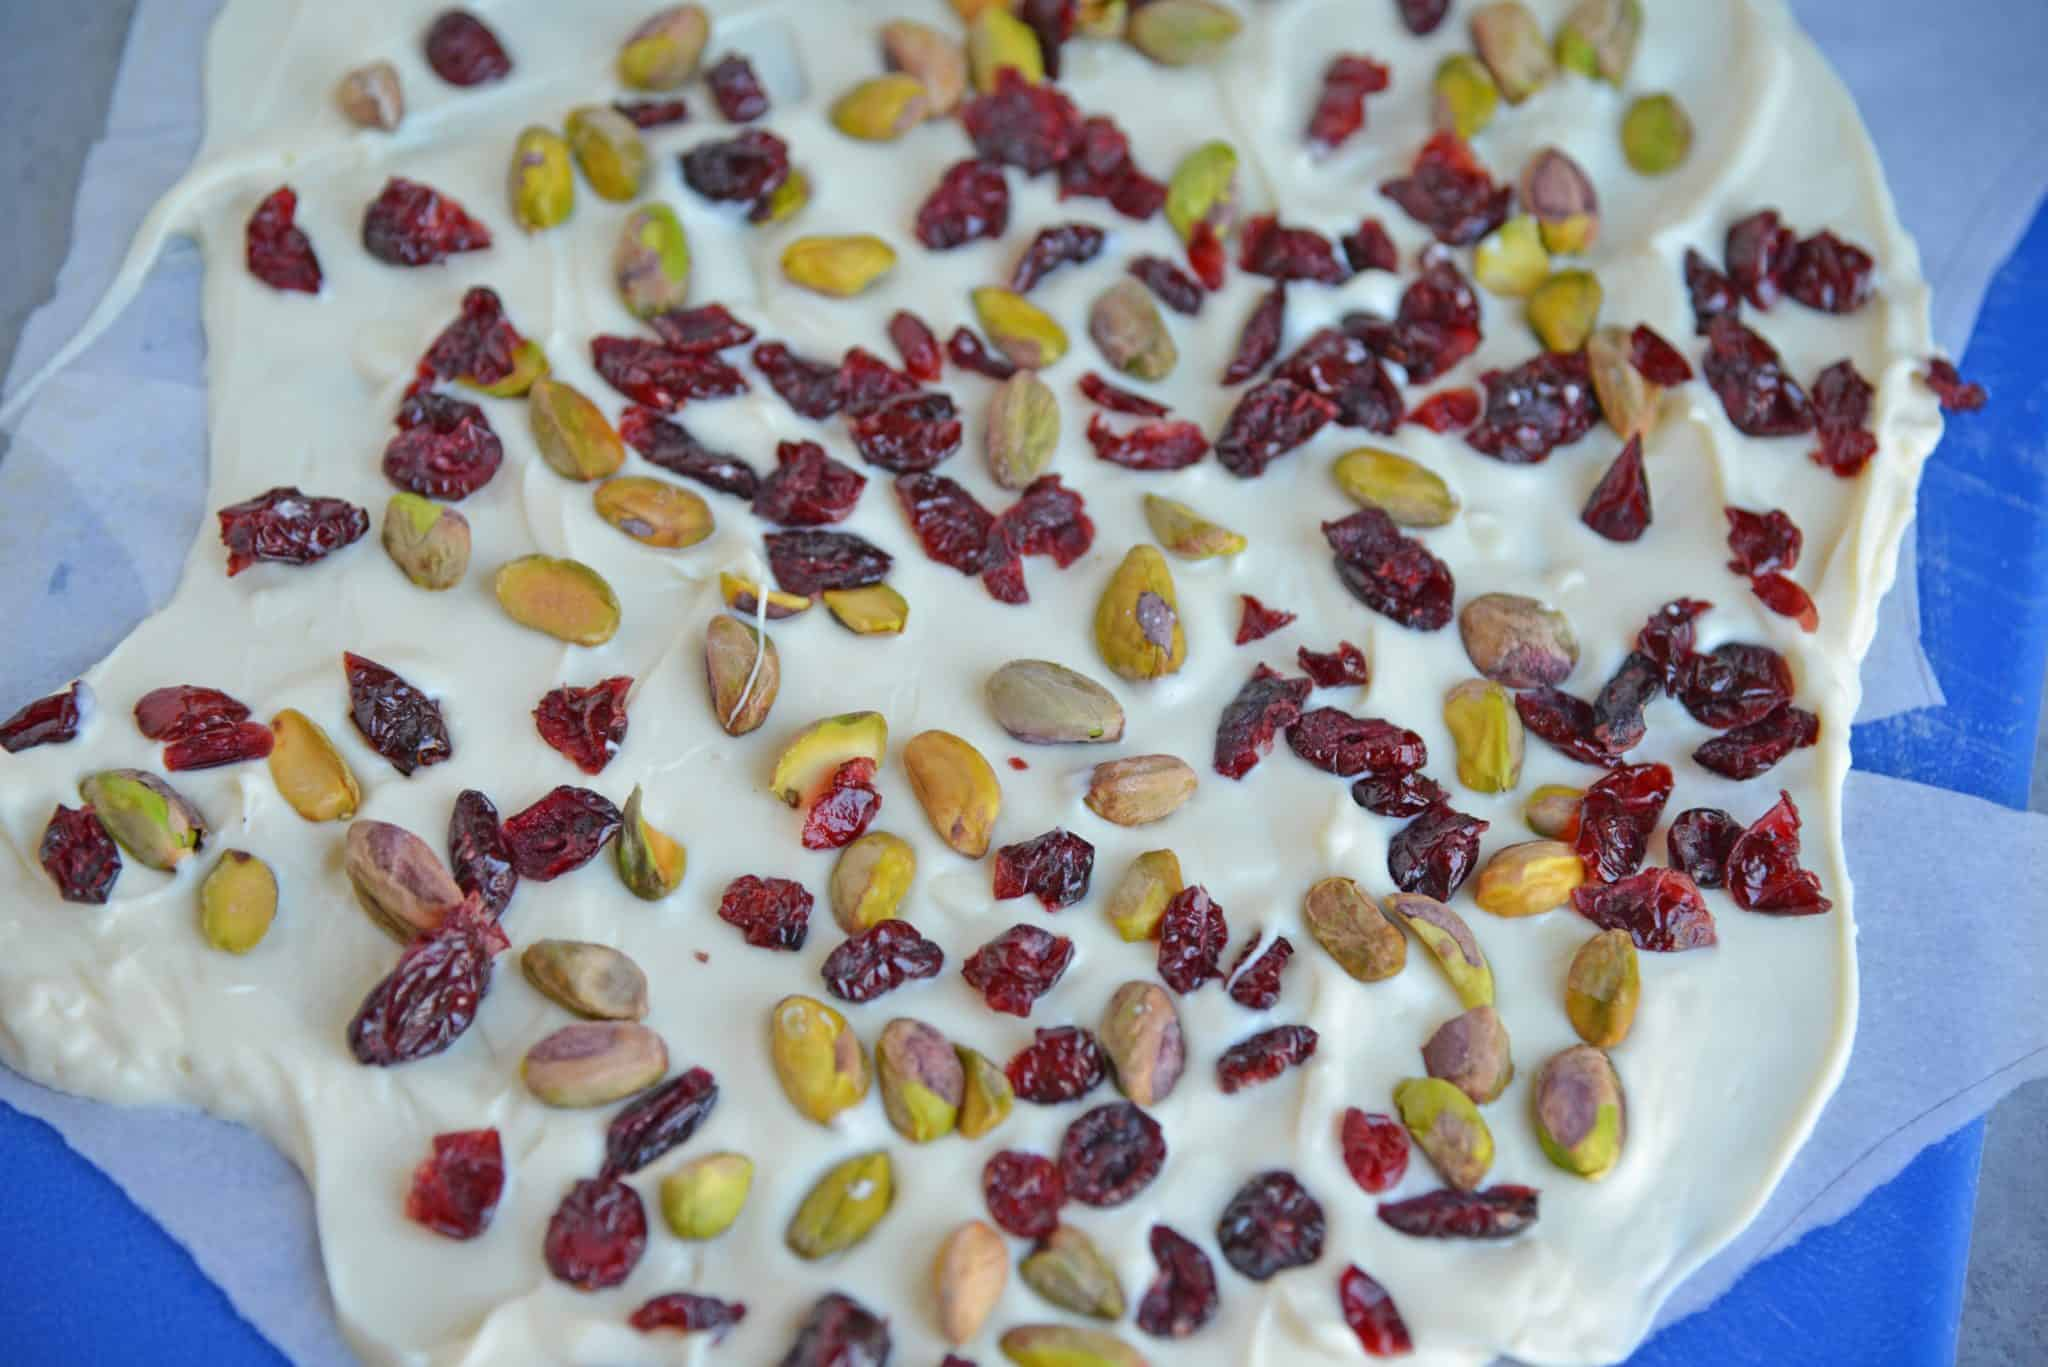 Pistachio Cranberry Bark is a delicious combination of pistachios, cranberries, and white chocolate! Perfect for the holiday season with its festive colors! #christmasbarkrecipe #pistachiocranberrybark www.savoryexperiments.com